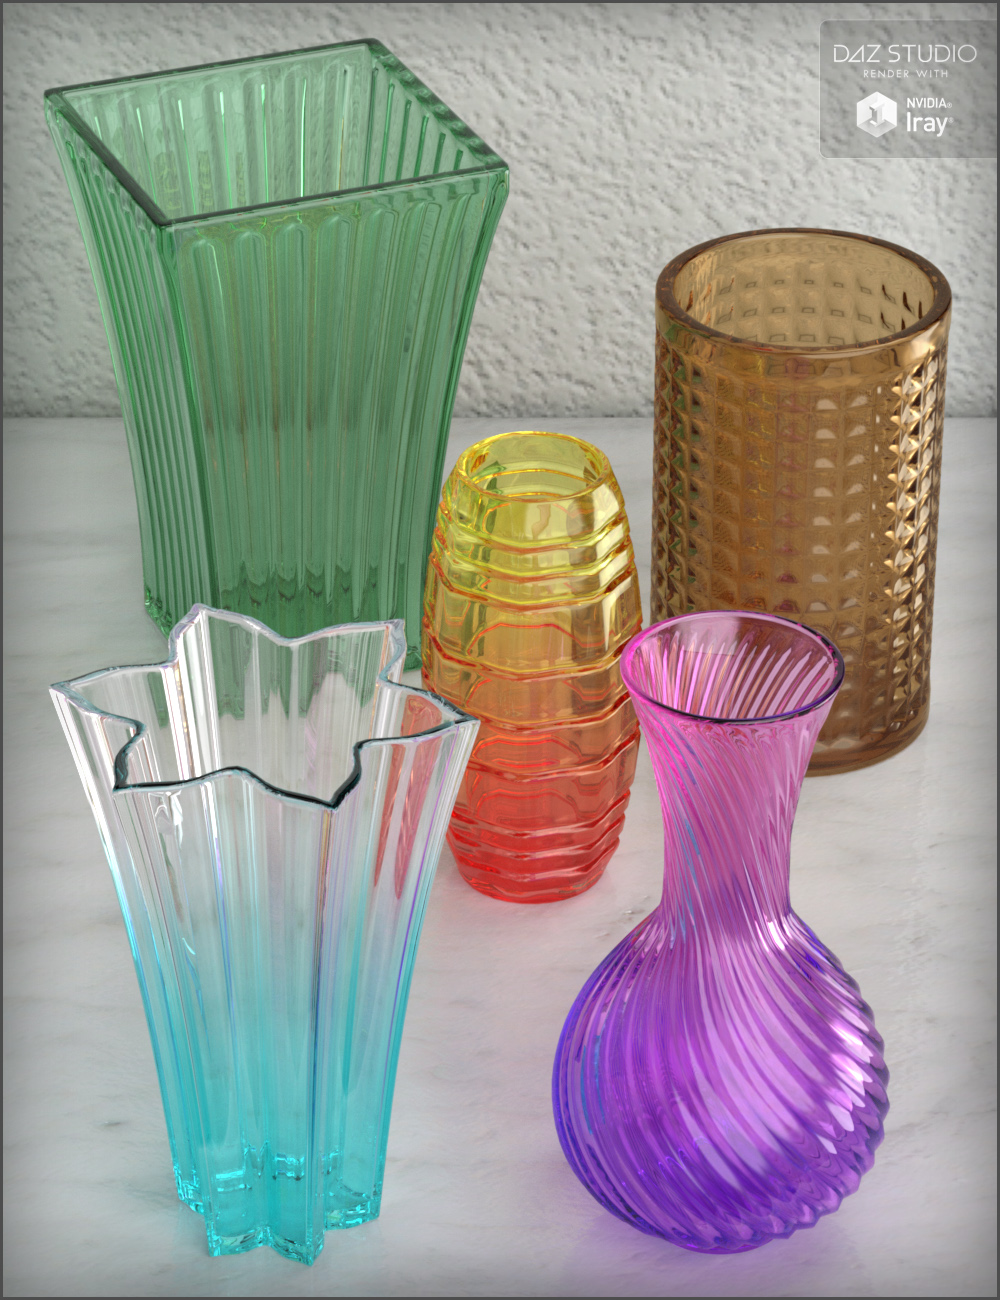 Crystal Vases by: Fisty & Darc, 3D Models by Daz 3D